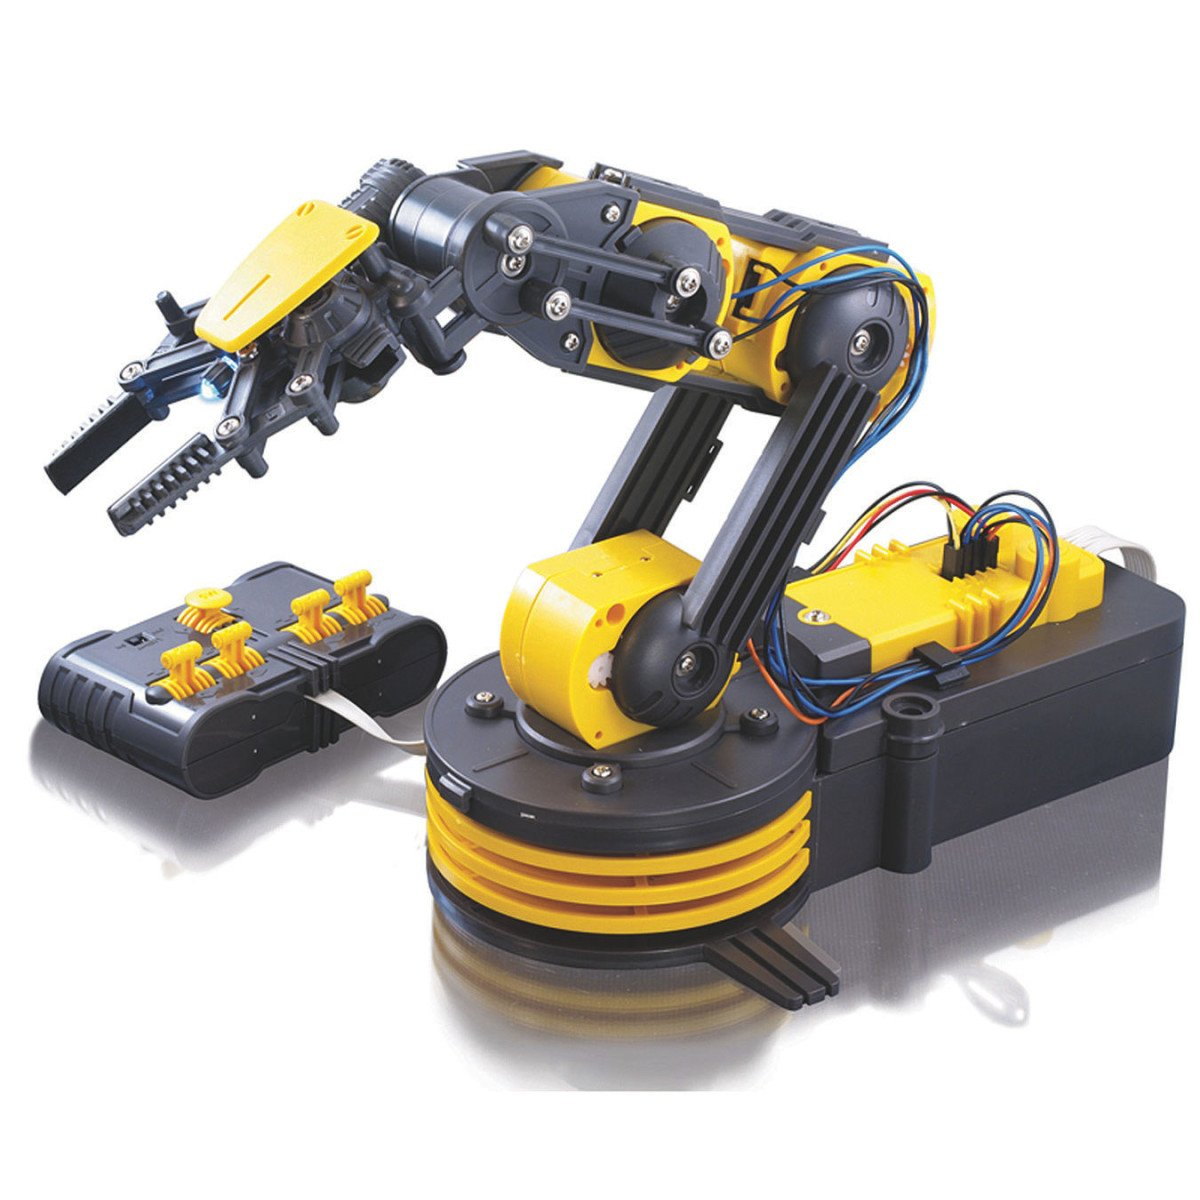 What to Get your Dad for Christmas - OWI Robotic Arm Edge